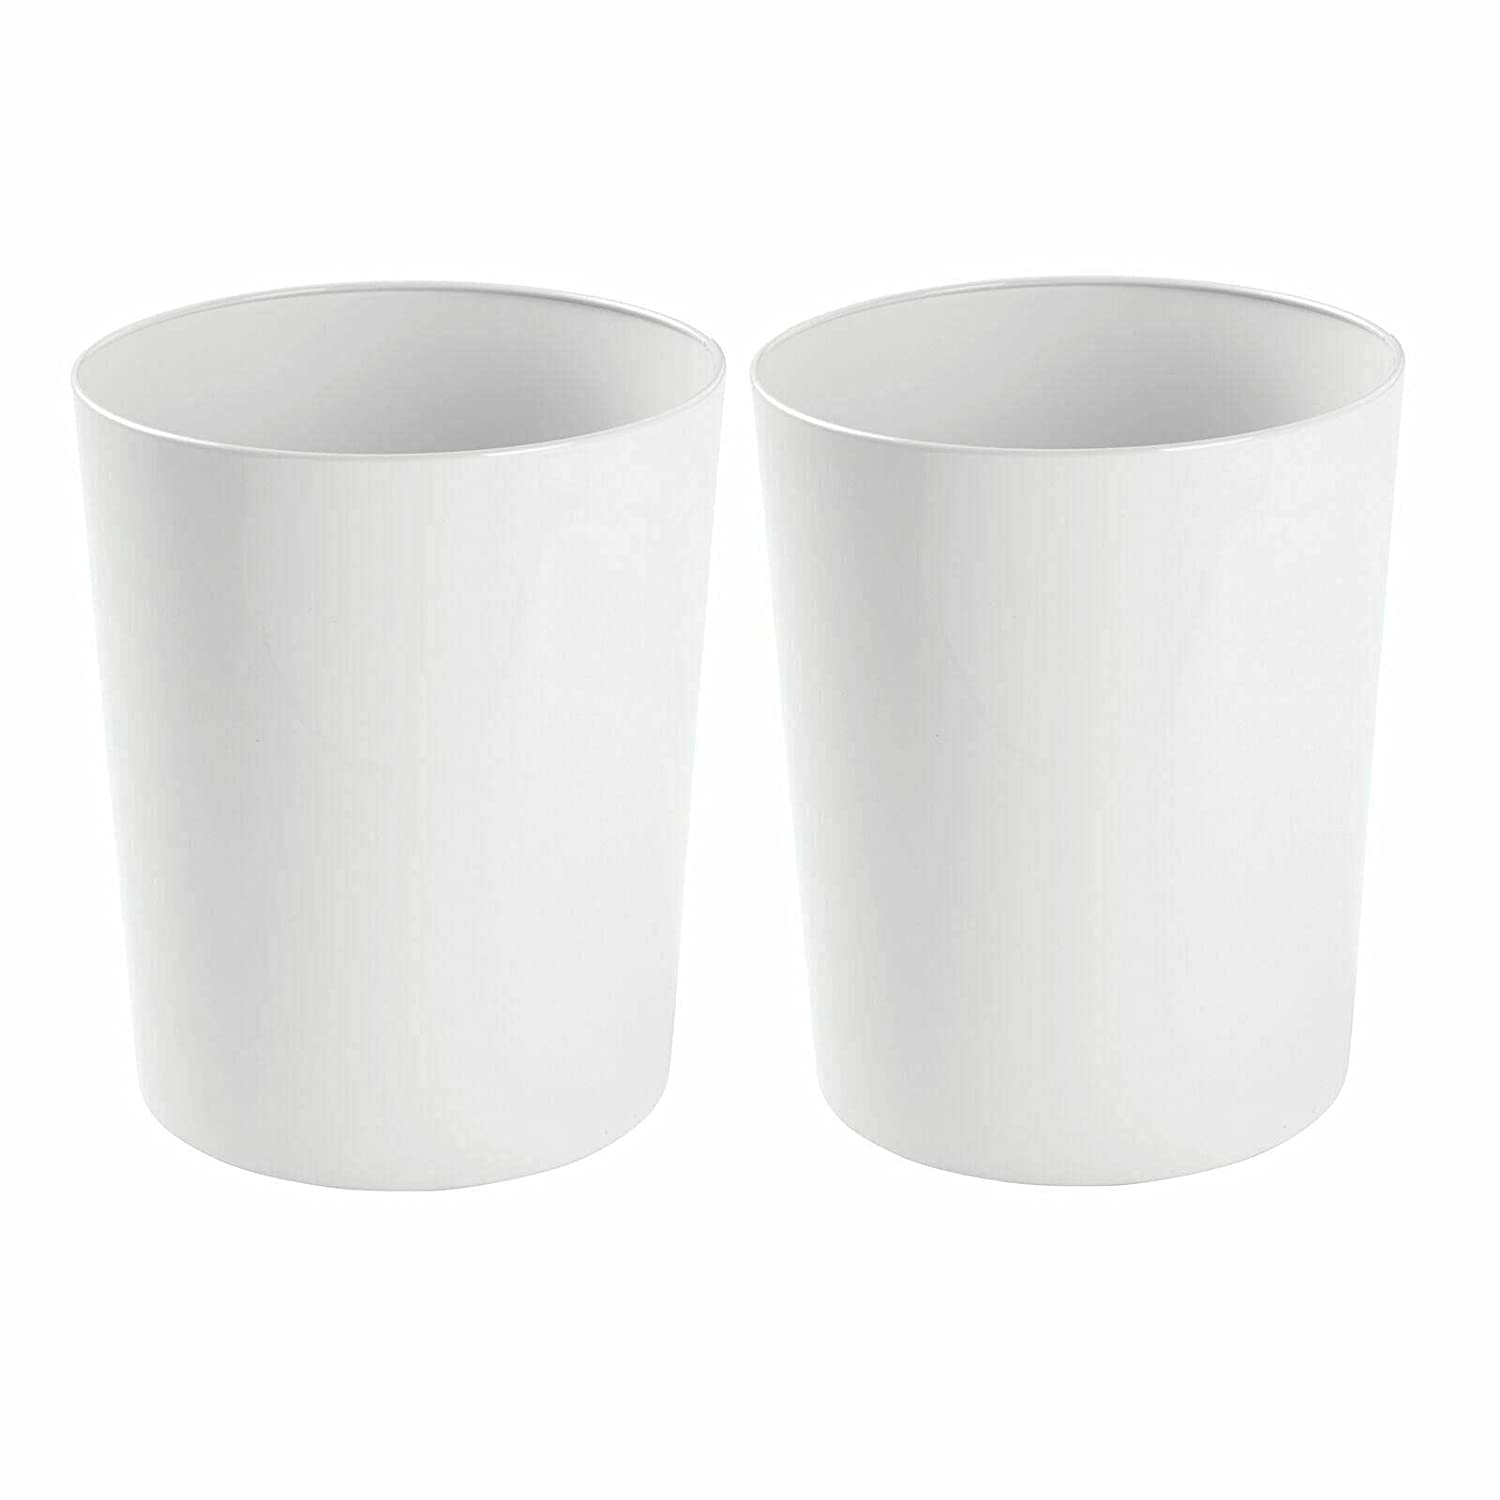 Round Metal Trash cans Wastebasket Garbage Bin White OFFicial store - Max 64% OFF 2 Pack